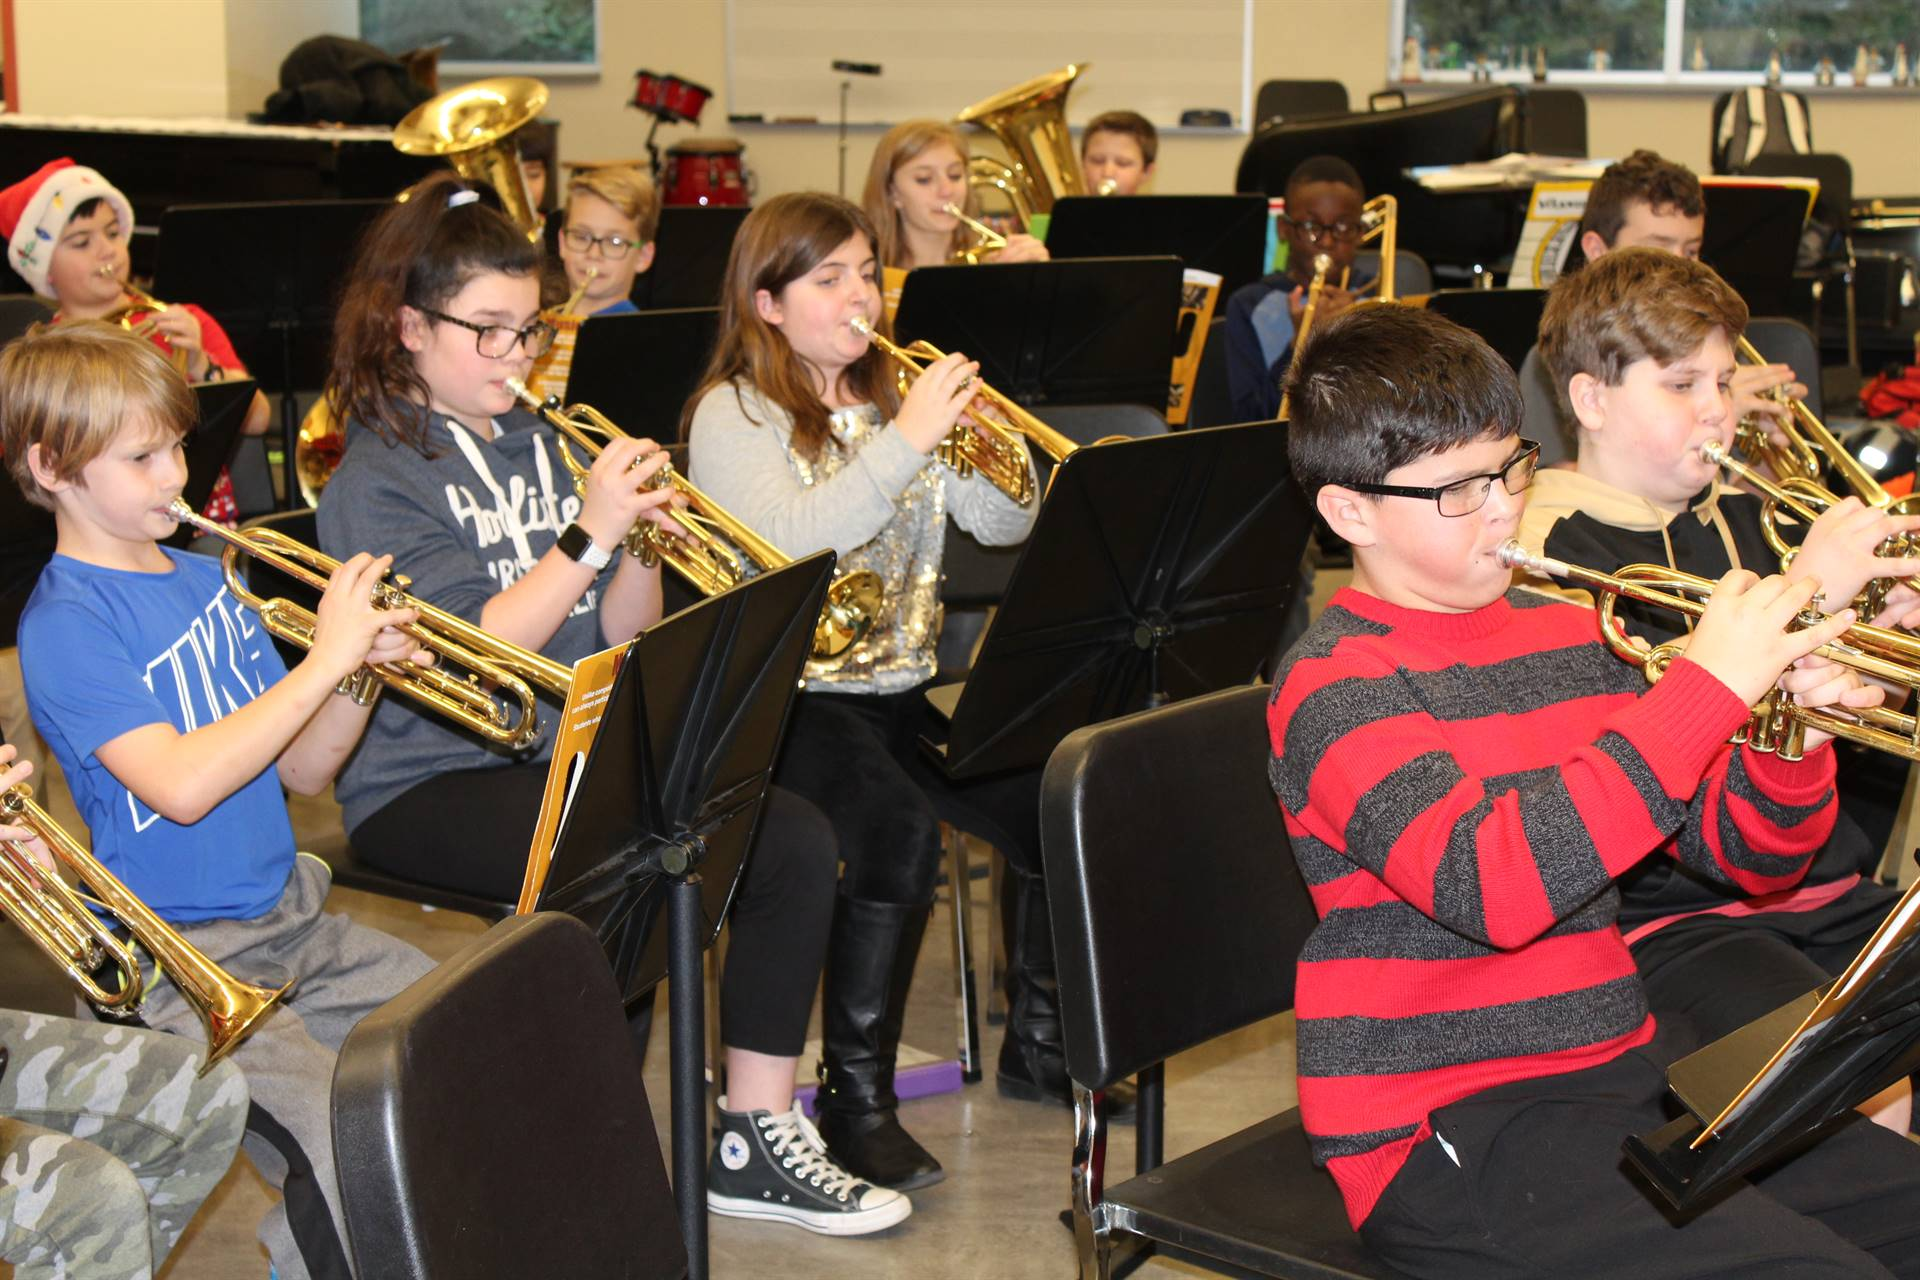 NAMS Students rehearse for the Brass Day concert